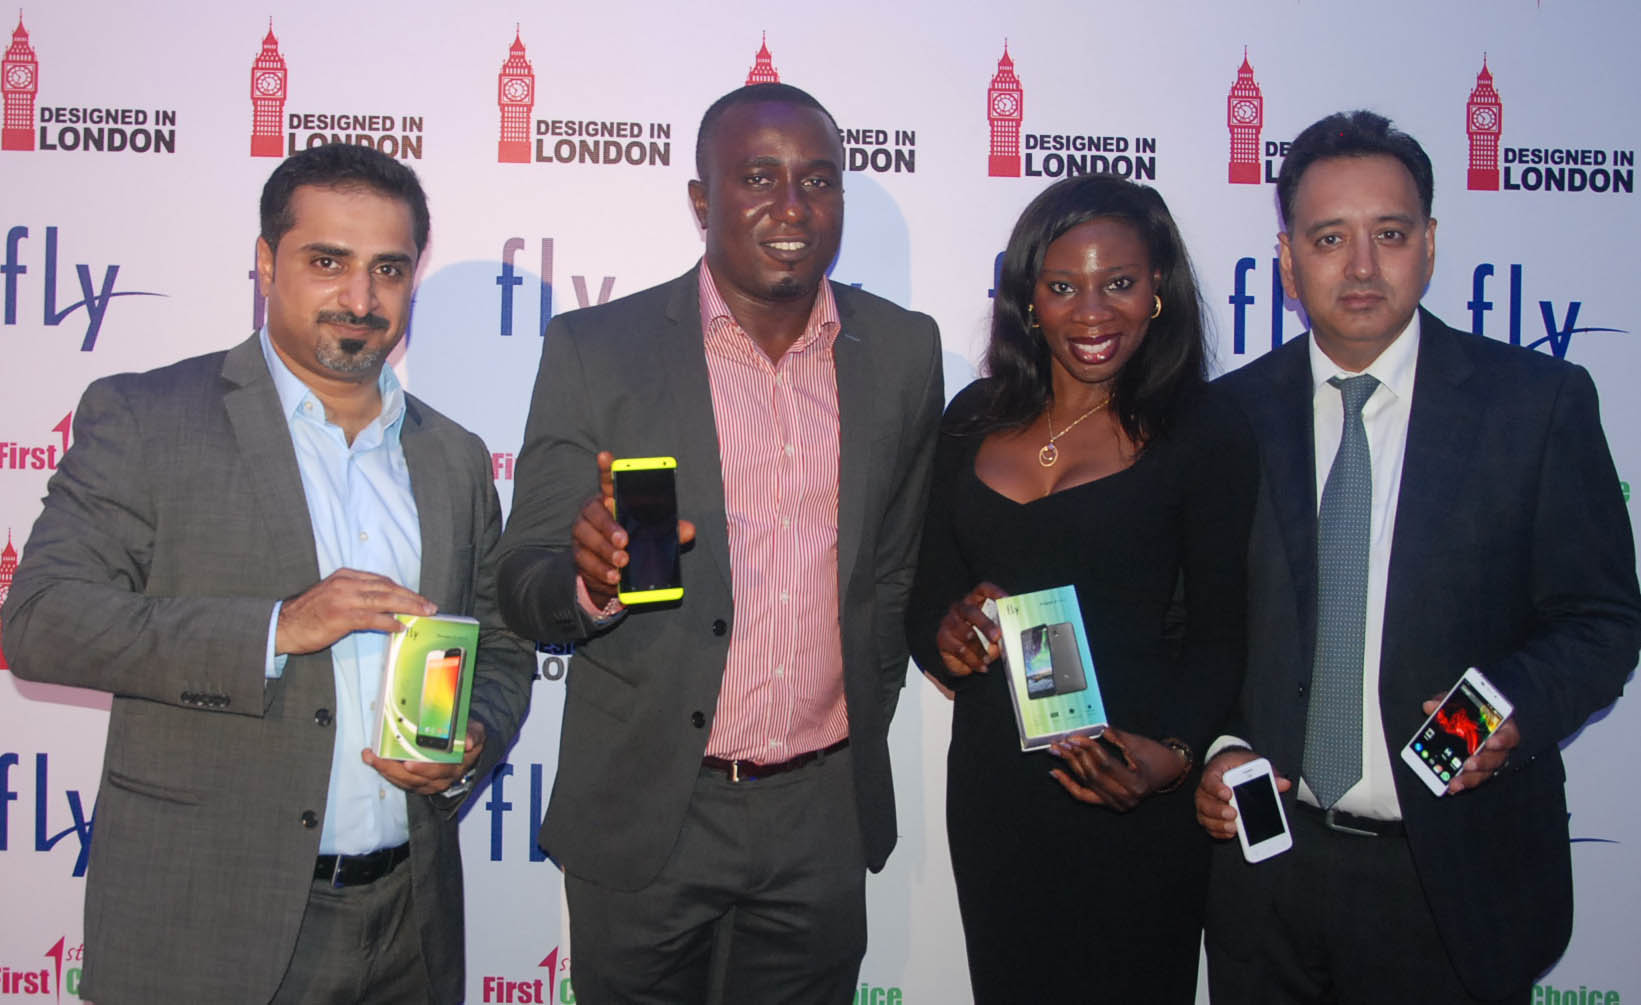 Leading European Mobile Phone Maker, Fly, Enters Nigerian Market